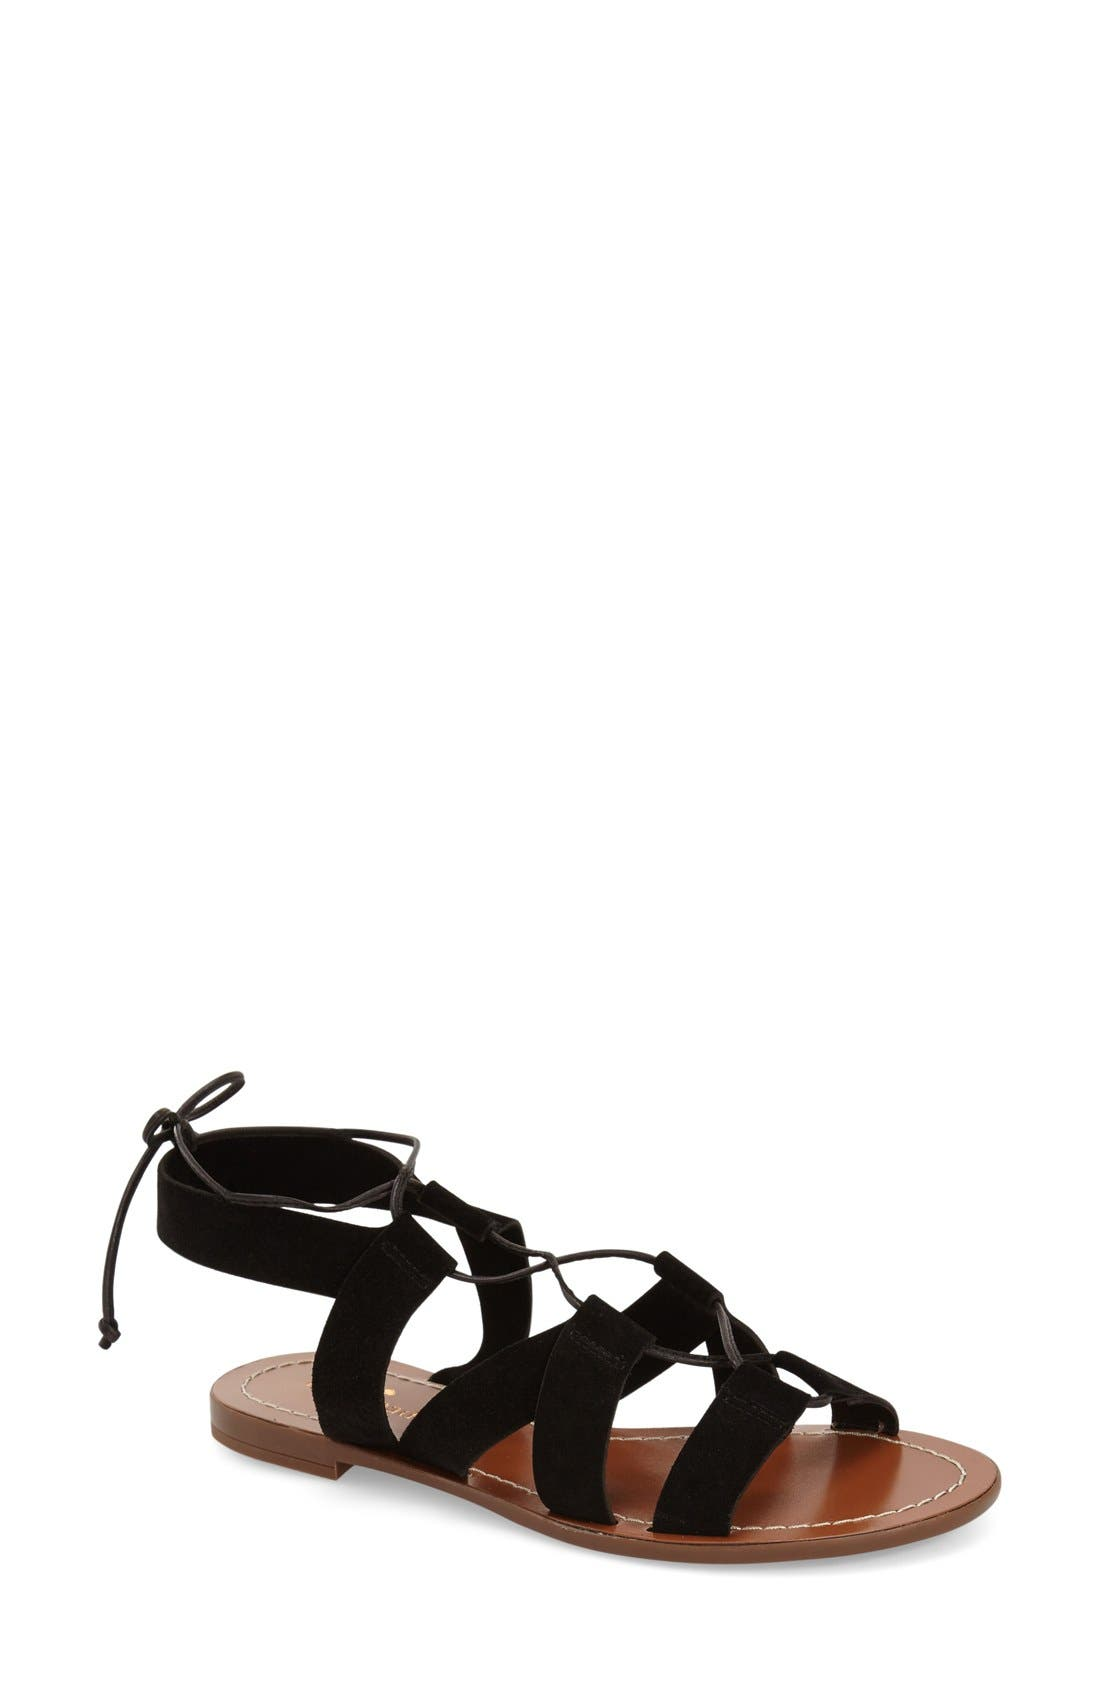 Alternate Image 1 Selected - kate spade new york 'suno' sandal (Women)